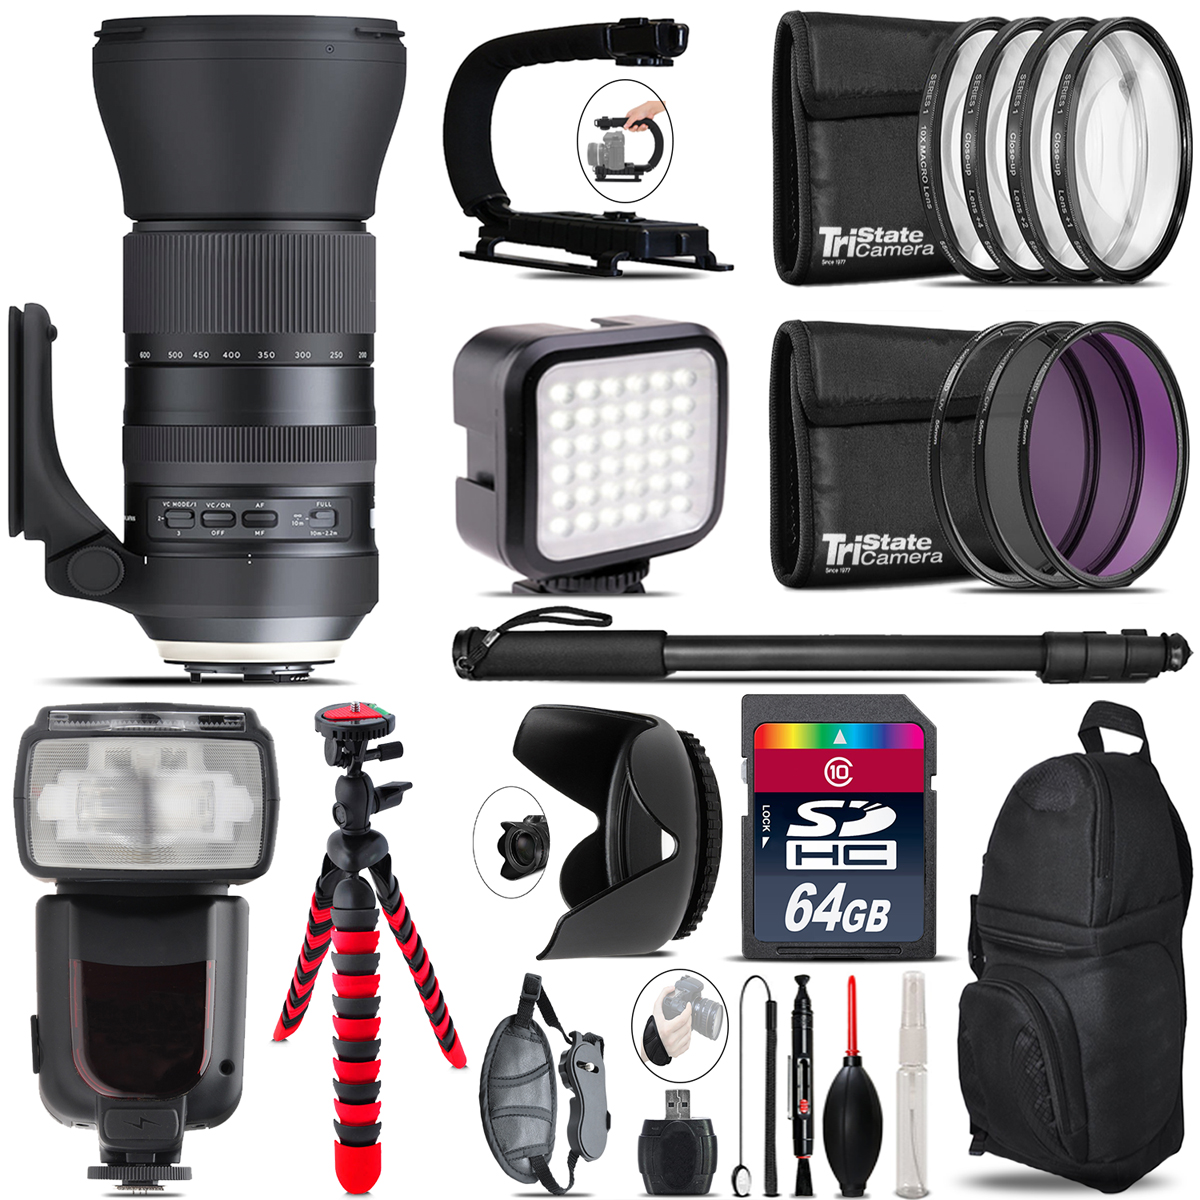 Tamron 150-600mm G2 for Canon - Video Kit + Pro Flash - 64GB Accessory Bundle *FREE SHIPPING*